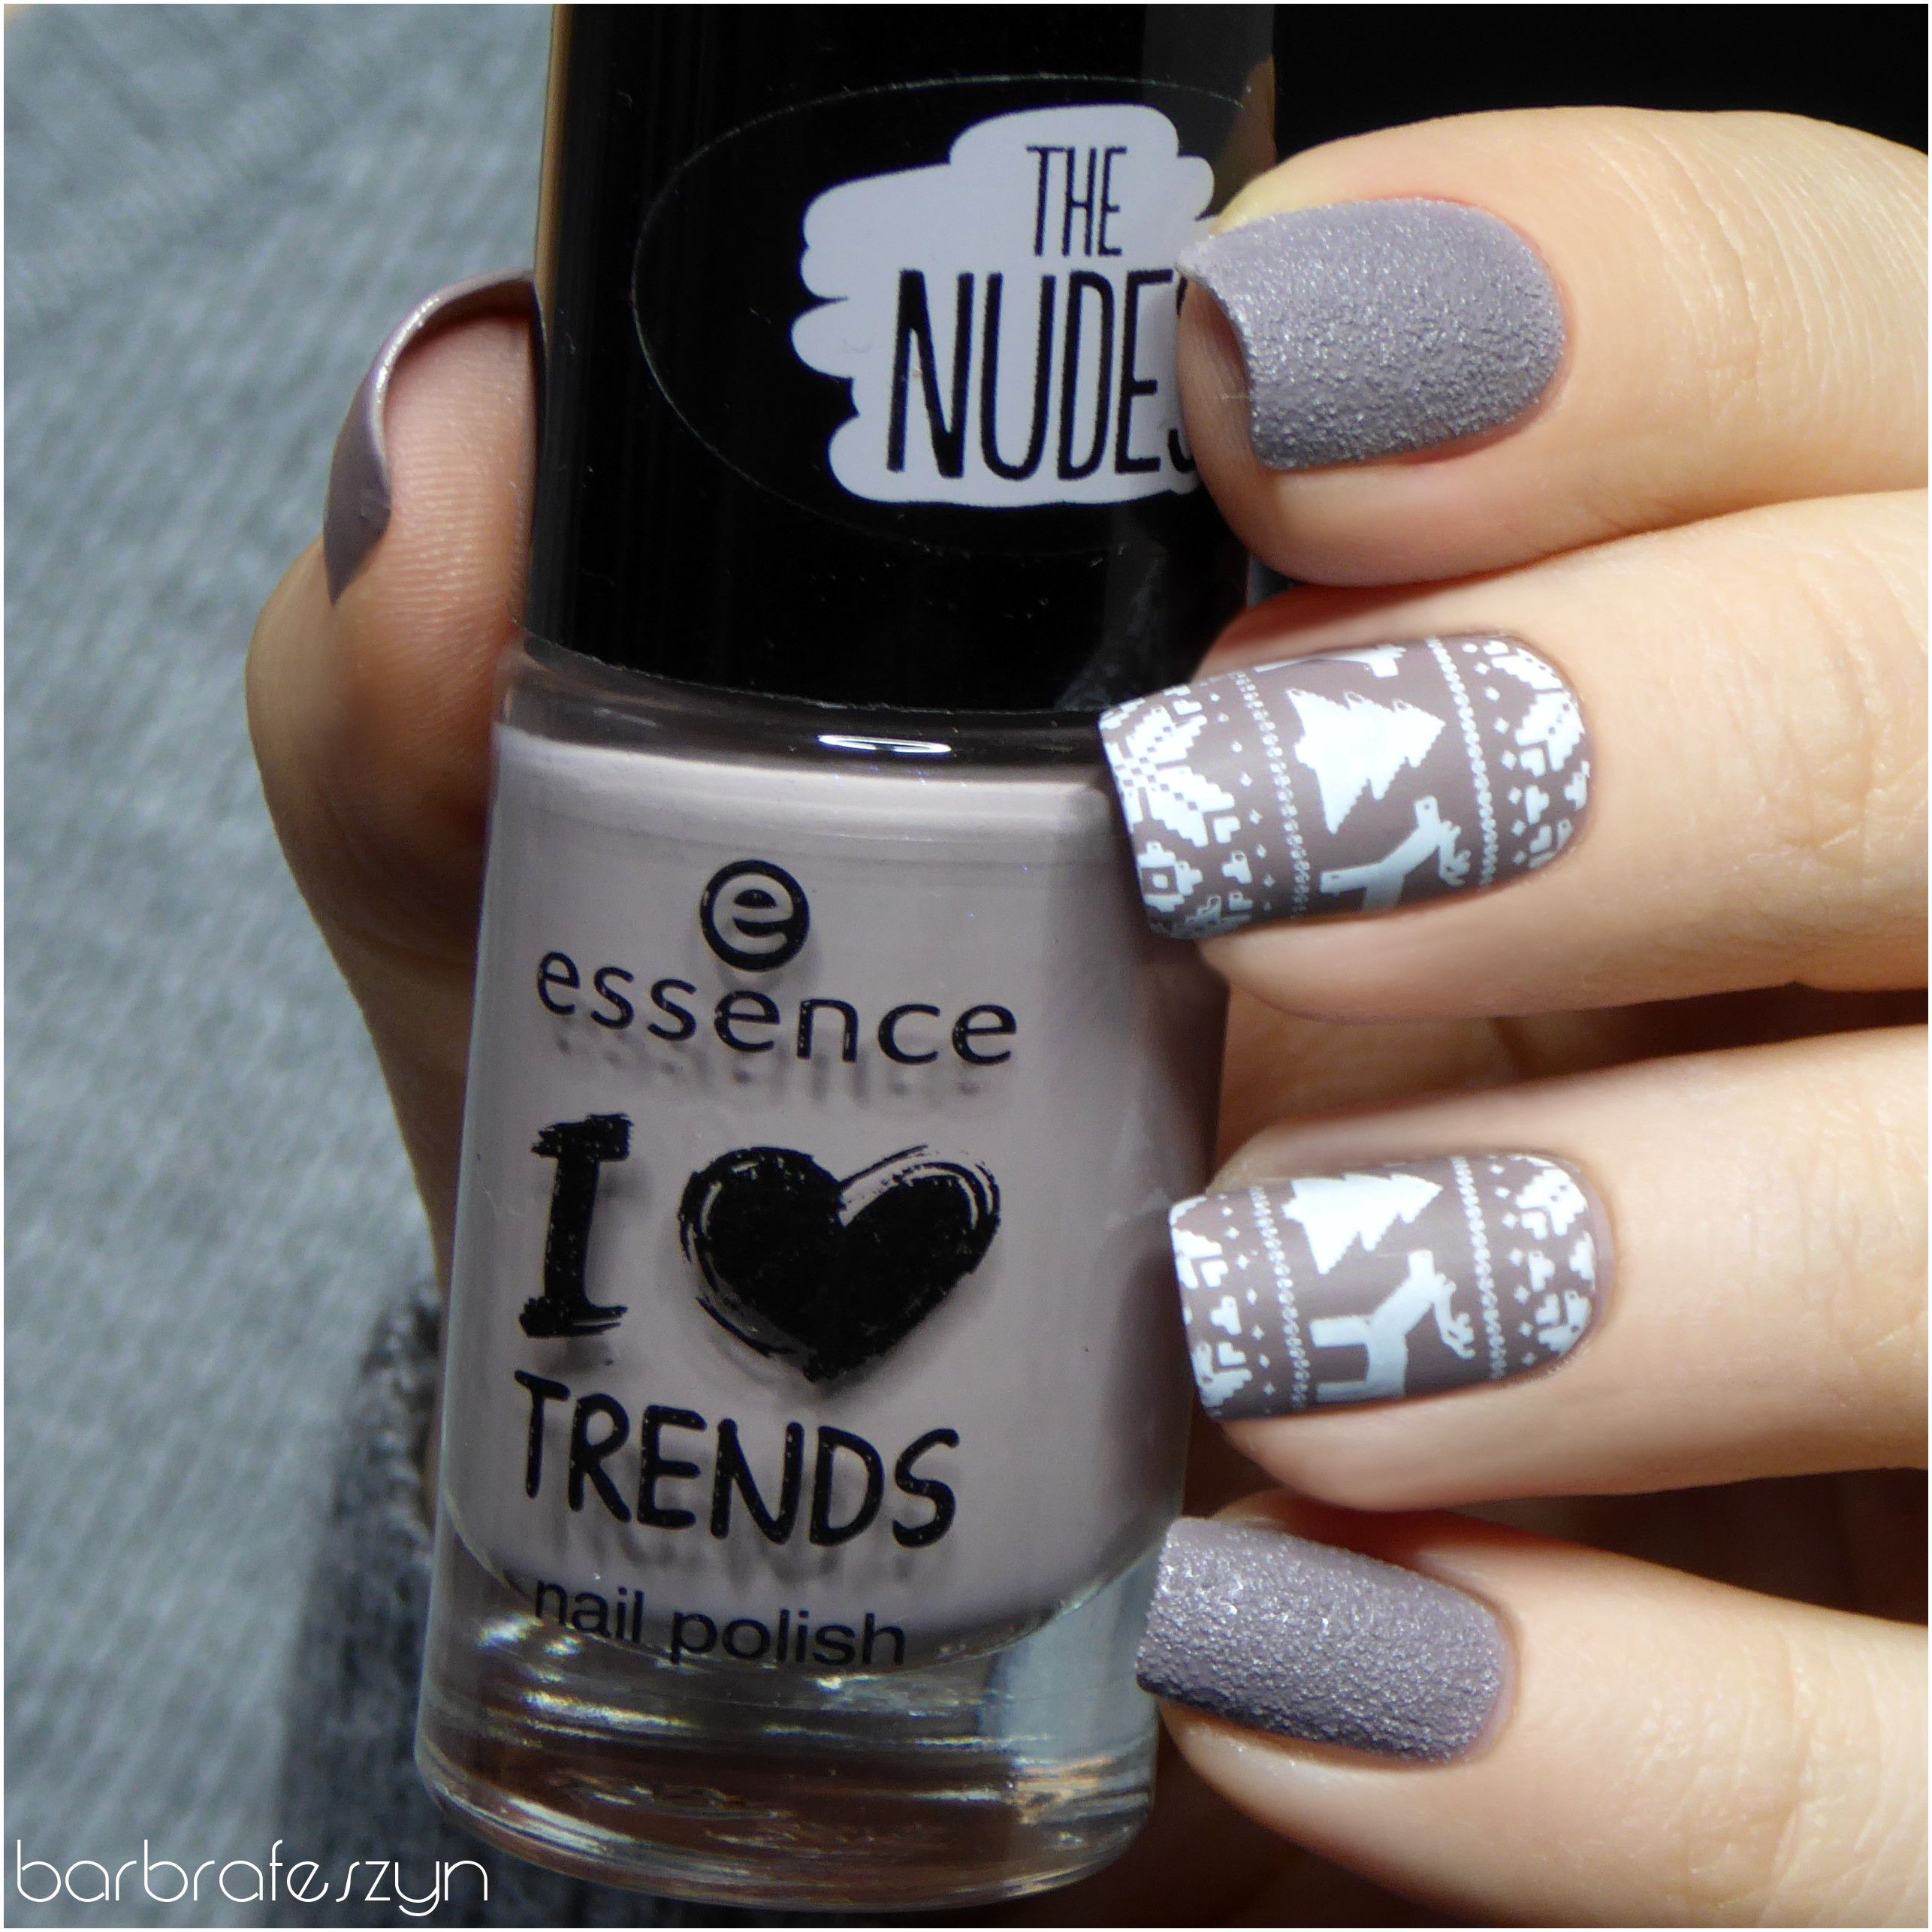 Matte nail polish is essence i love trends 08 crunchy cake and the